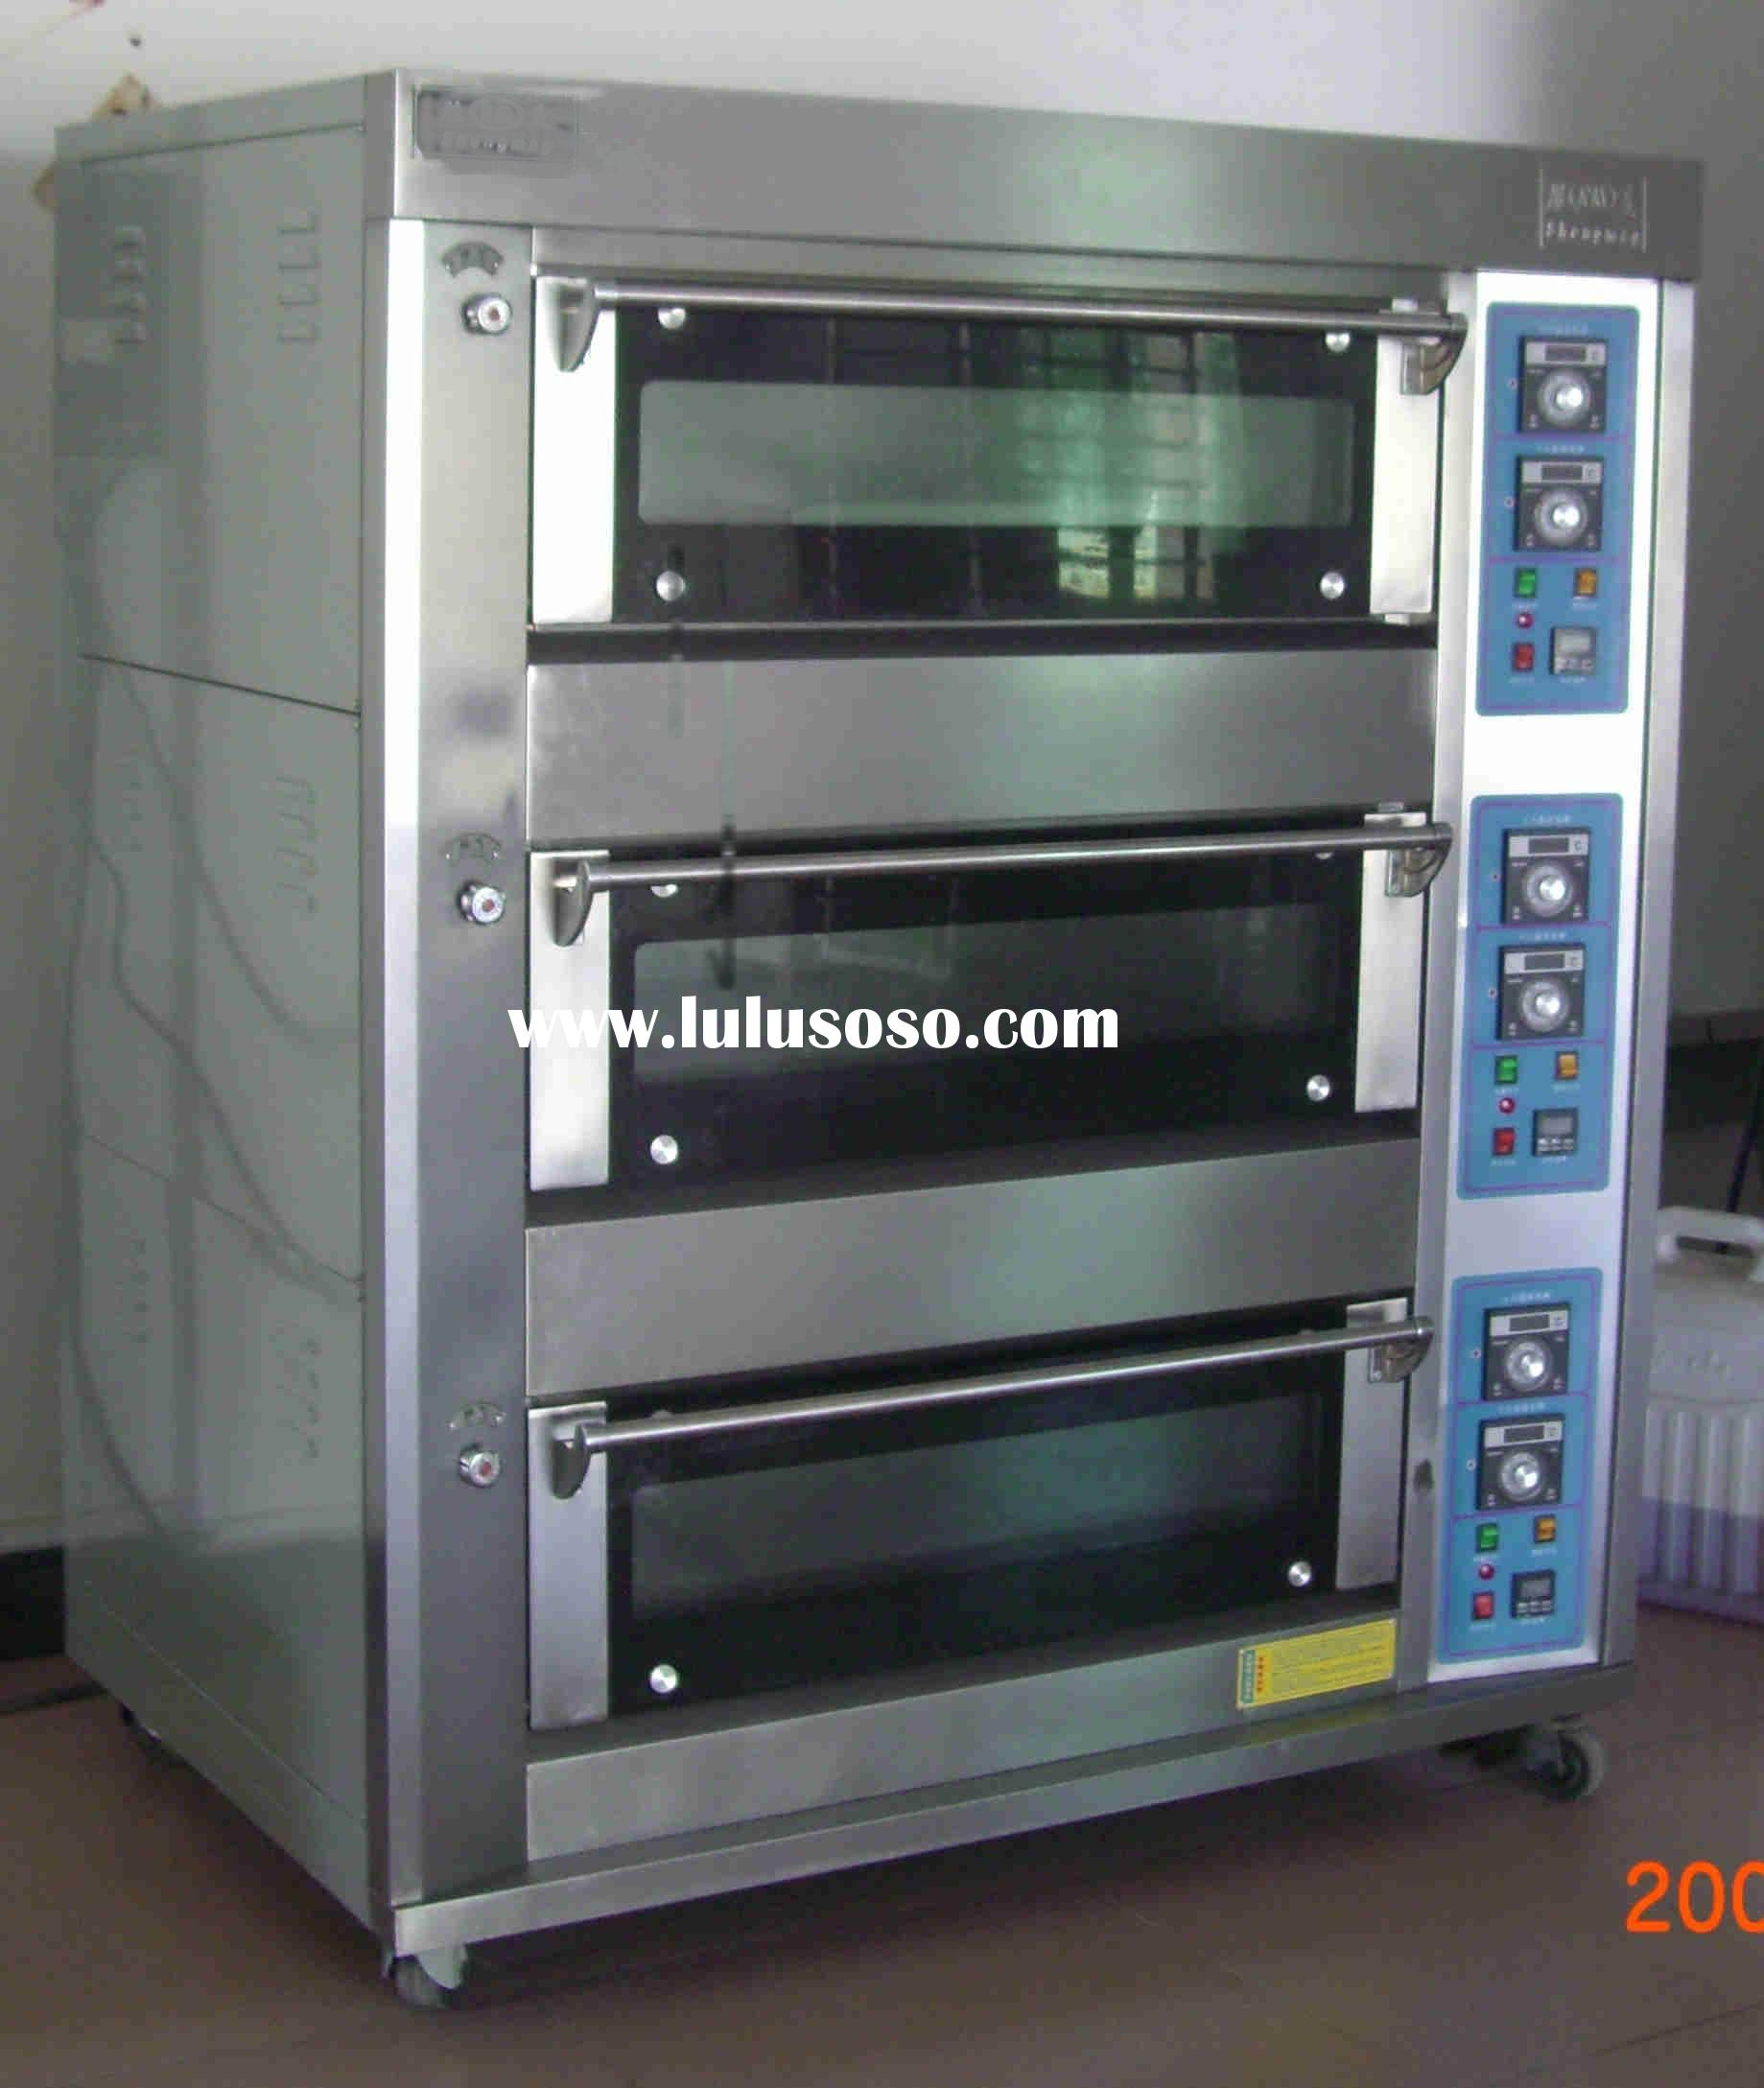 Gas Bread Oven Gas Bread Oven Manufacturers In Lulusoso